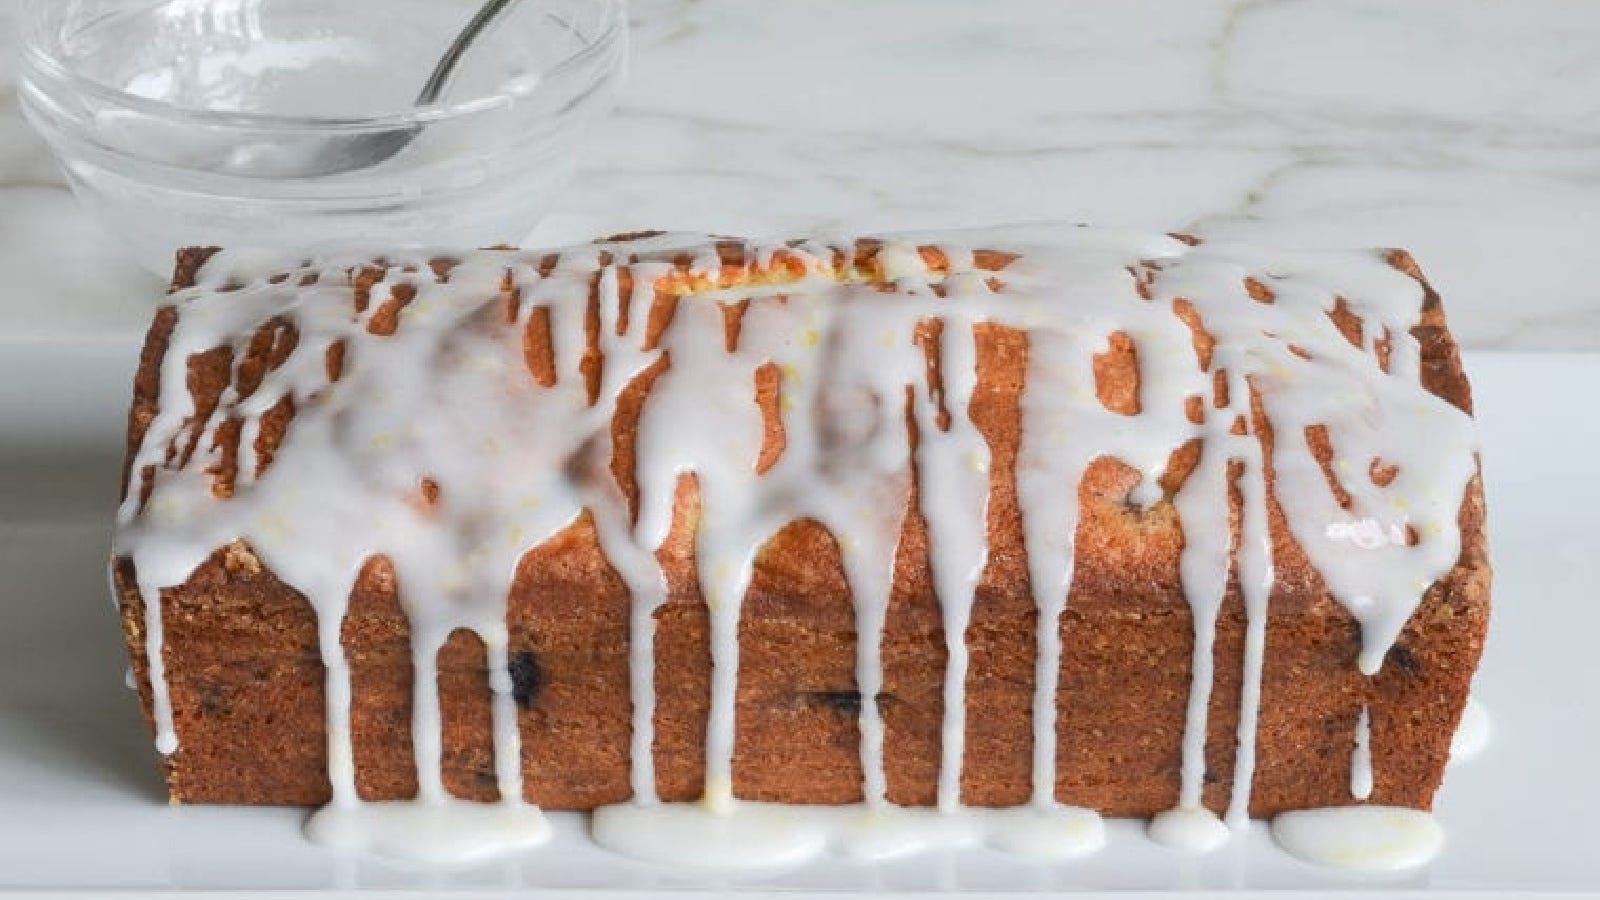 A loaf of lemon blueberry pound cake drizzled with a homemade glaze.